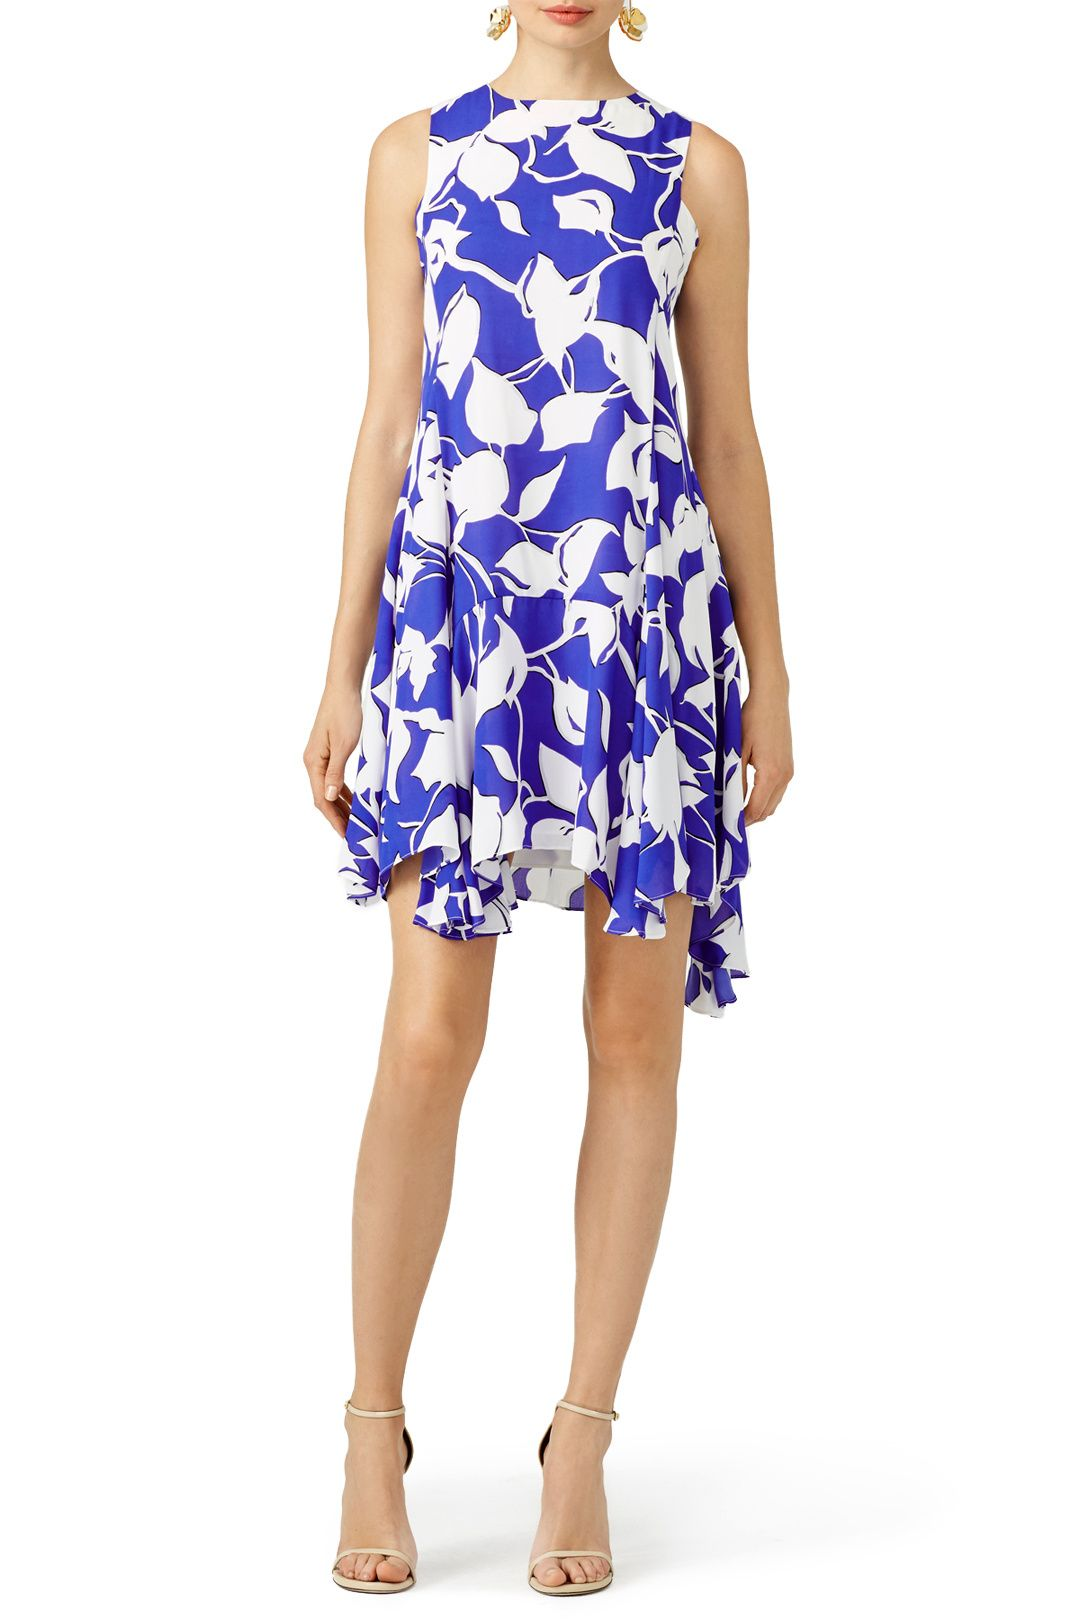 d5eb8387 Periwinkle Pistachio Block Up Sheath by Cynthia Rowley   Style   Dressy  dresses, How to wear, Dresses